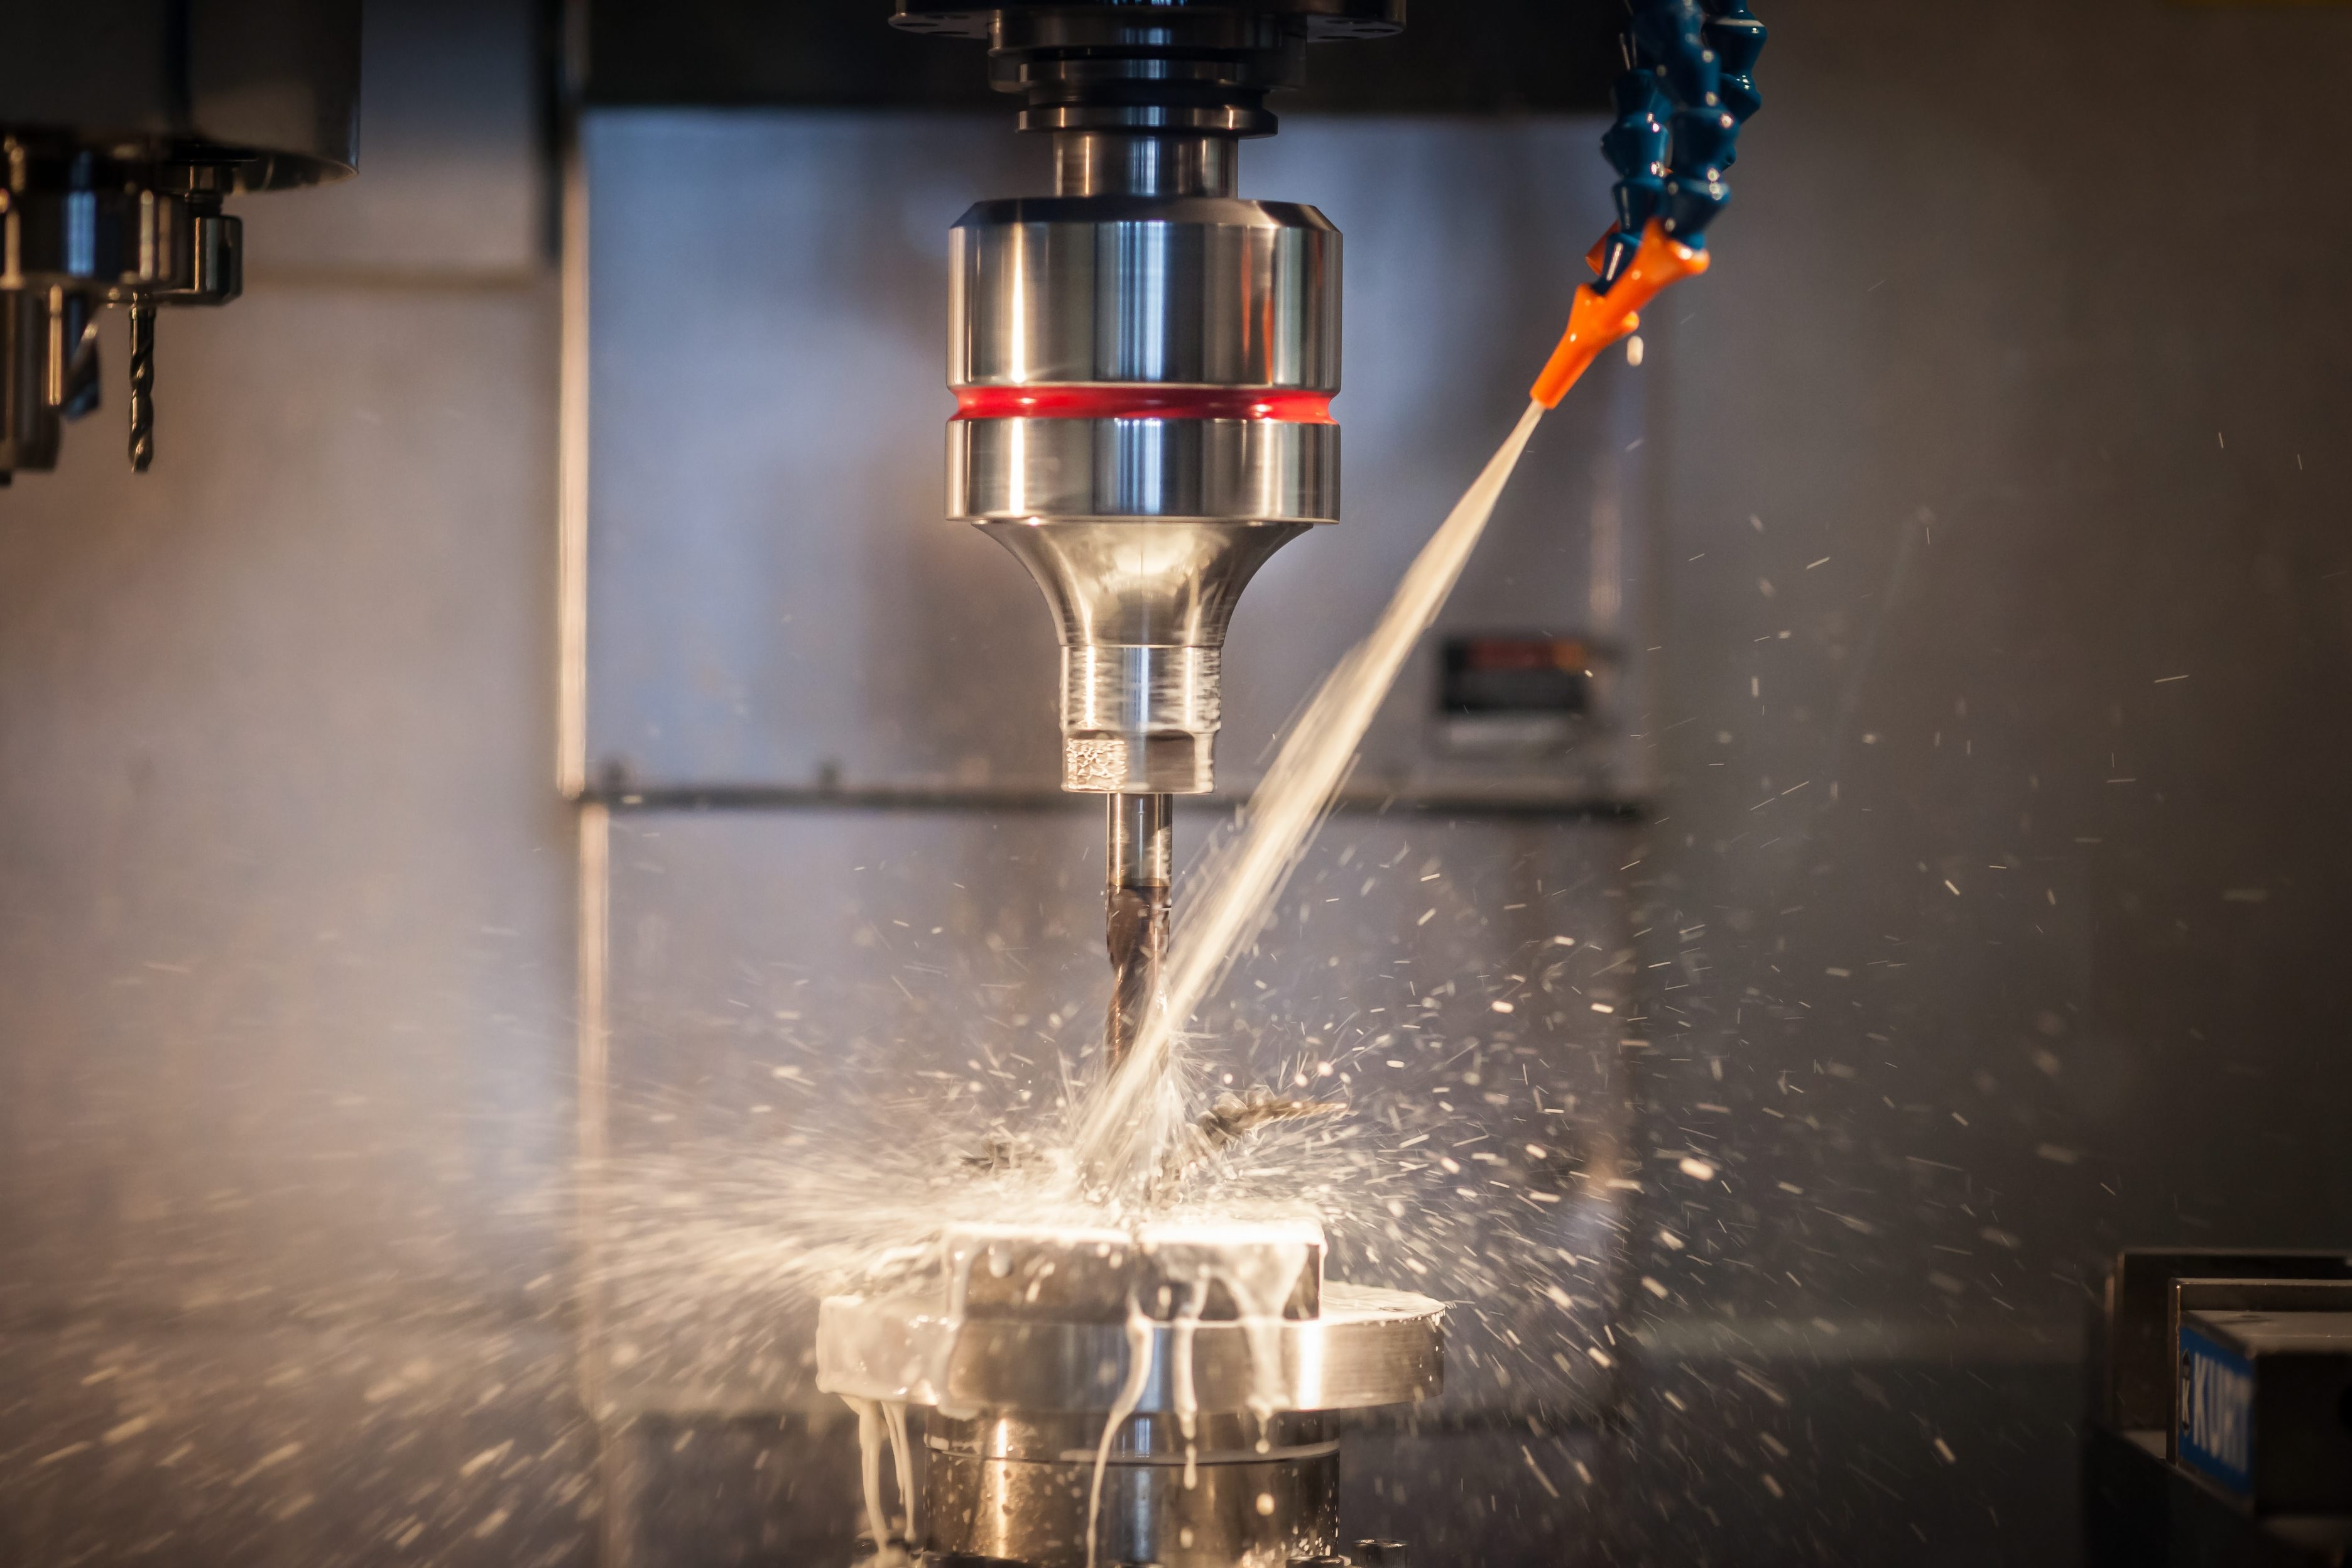 Advanced manufacturing includes use of high-tech tools like this ultrasonic drill, and companies are looking for skilled workers.